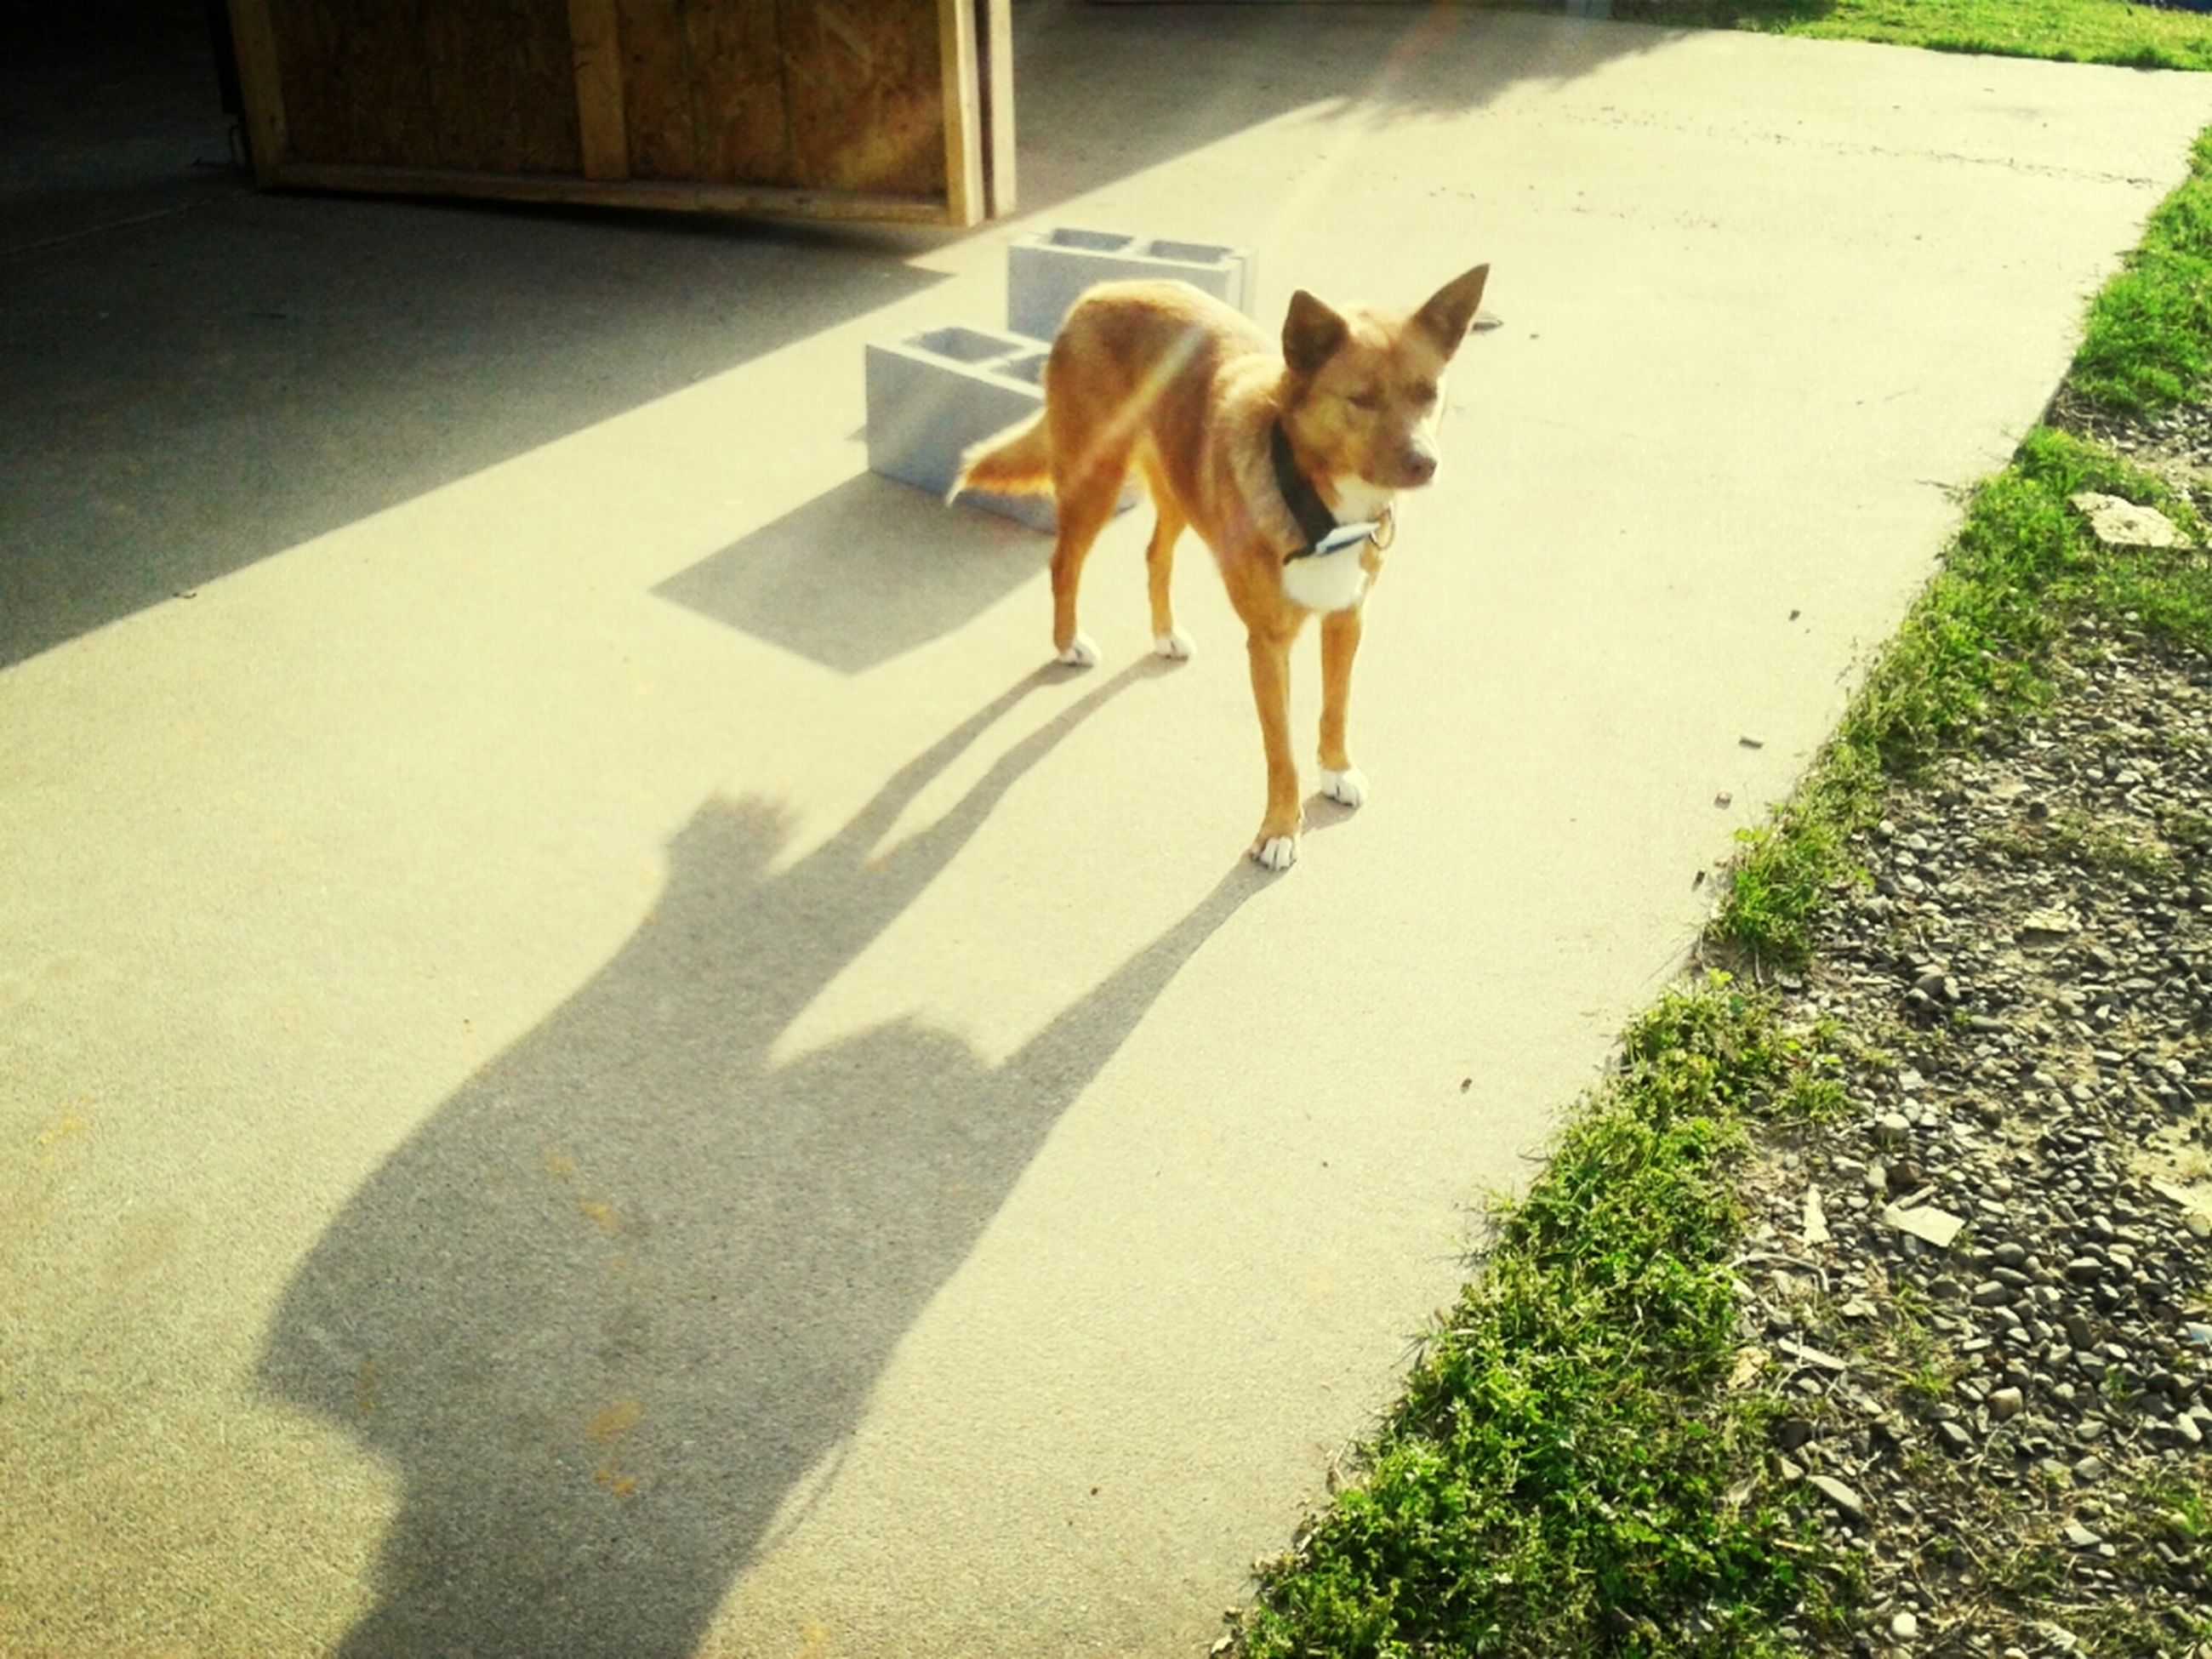 domestic animals, dog, pets, animal themes, one animal, mammal, shadow, high angle view, sunlight, street, pet leash, full length, road, day, walking, outdoors, standing, pet collar, no people, sidewalk